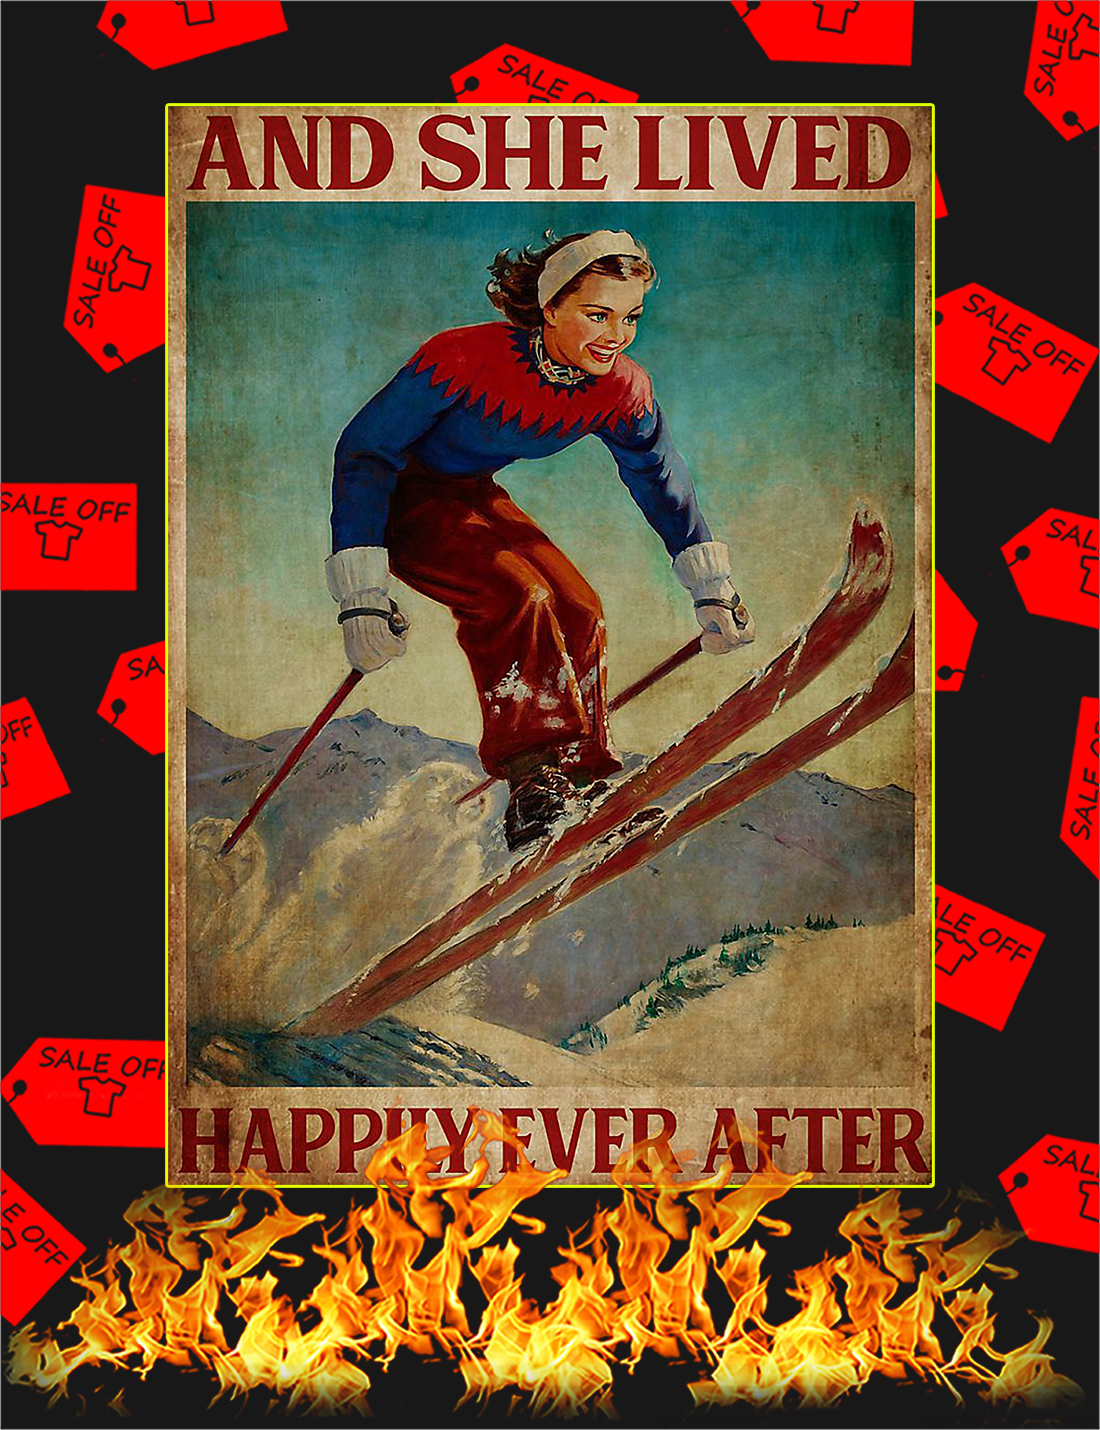 Skiing and she lived happily ever after poster